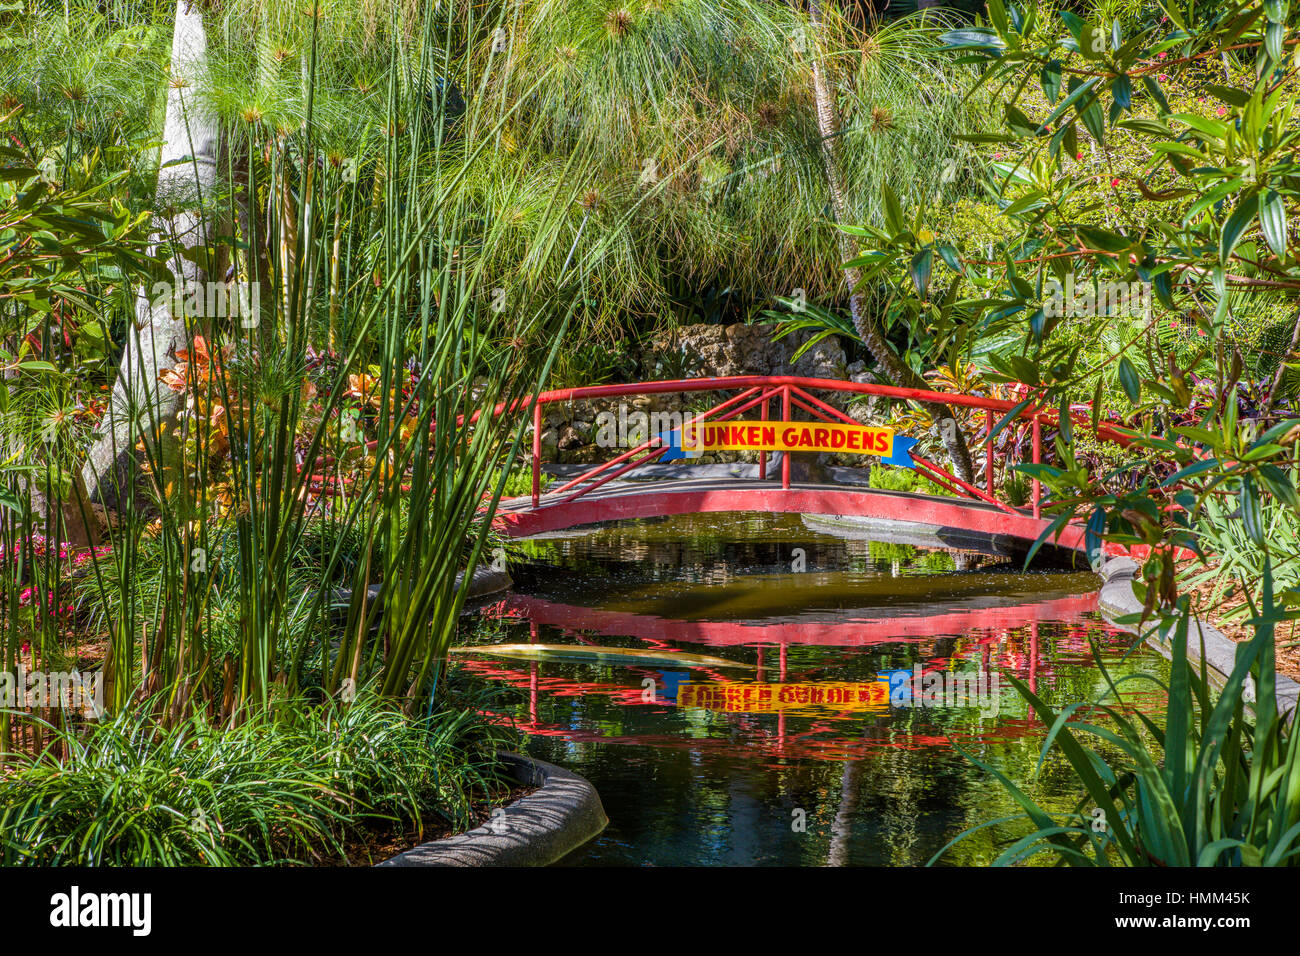 Sunken Gardens 100 Year Old Botanical Gardens In St Petersburg Stock Photo 133208031 Alamy